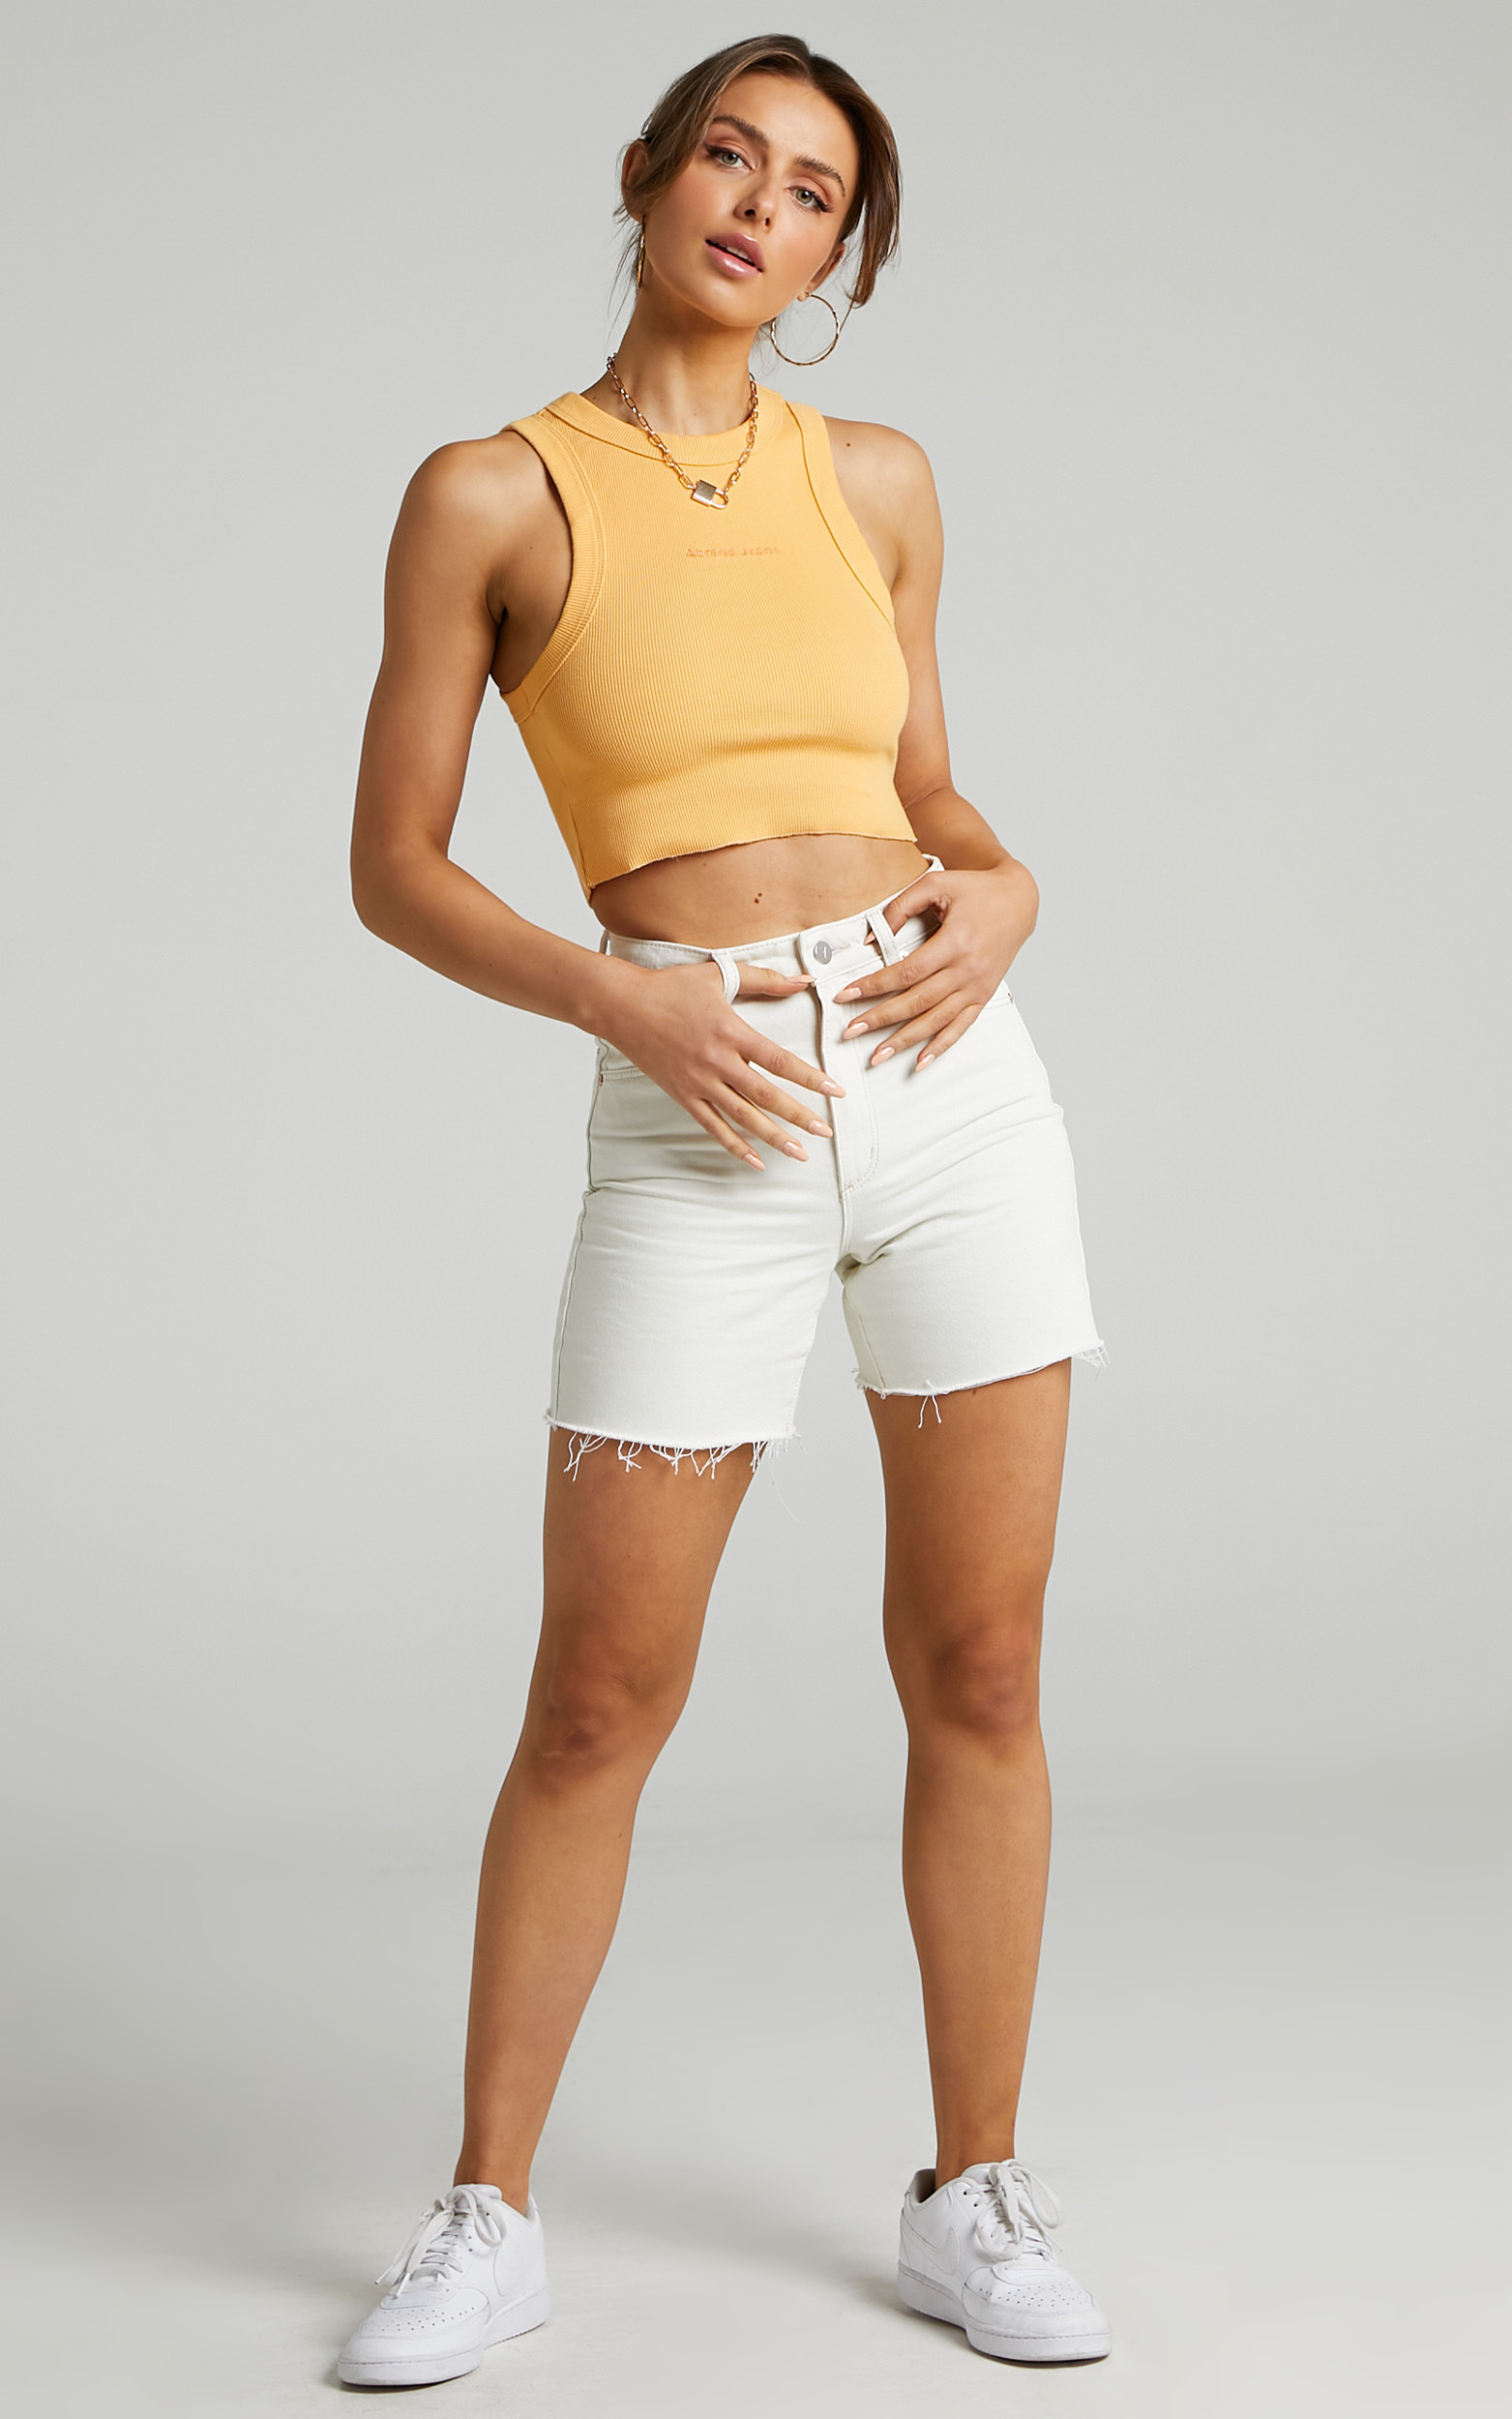 Abrand - A Heather Singlet in Tangerine - L, ORG1, hi-res image number null